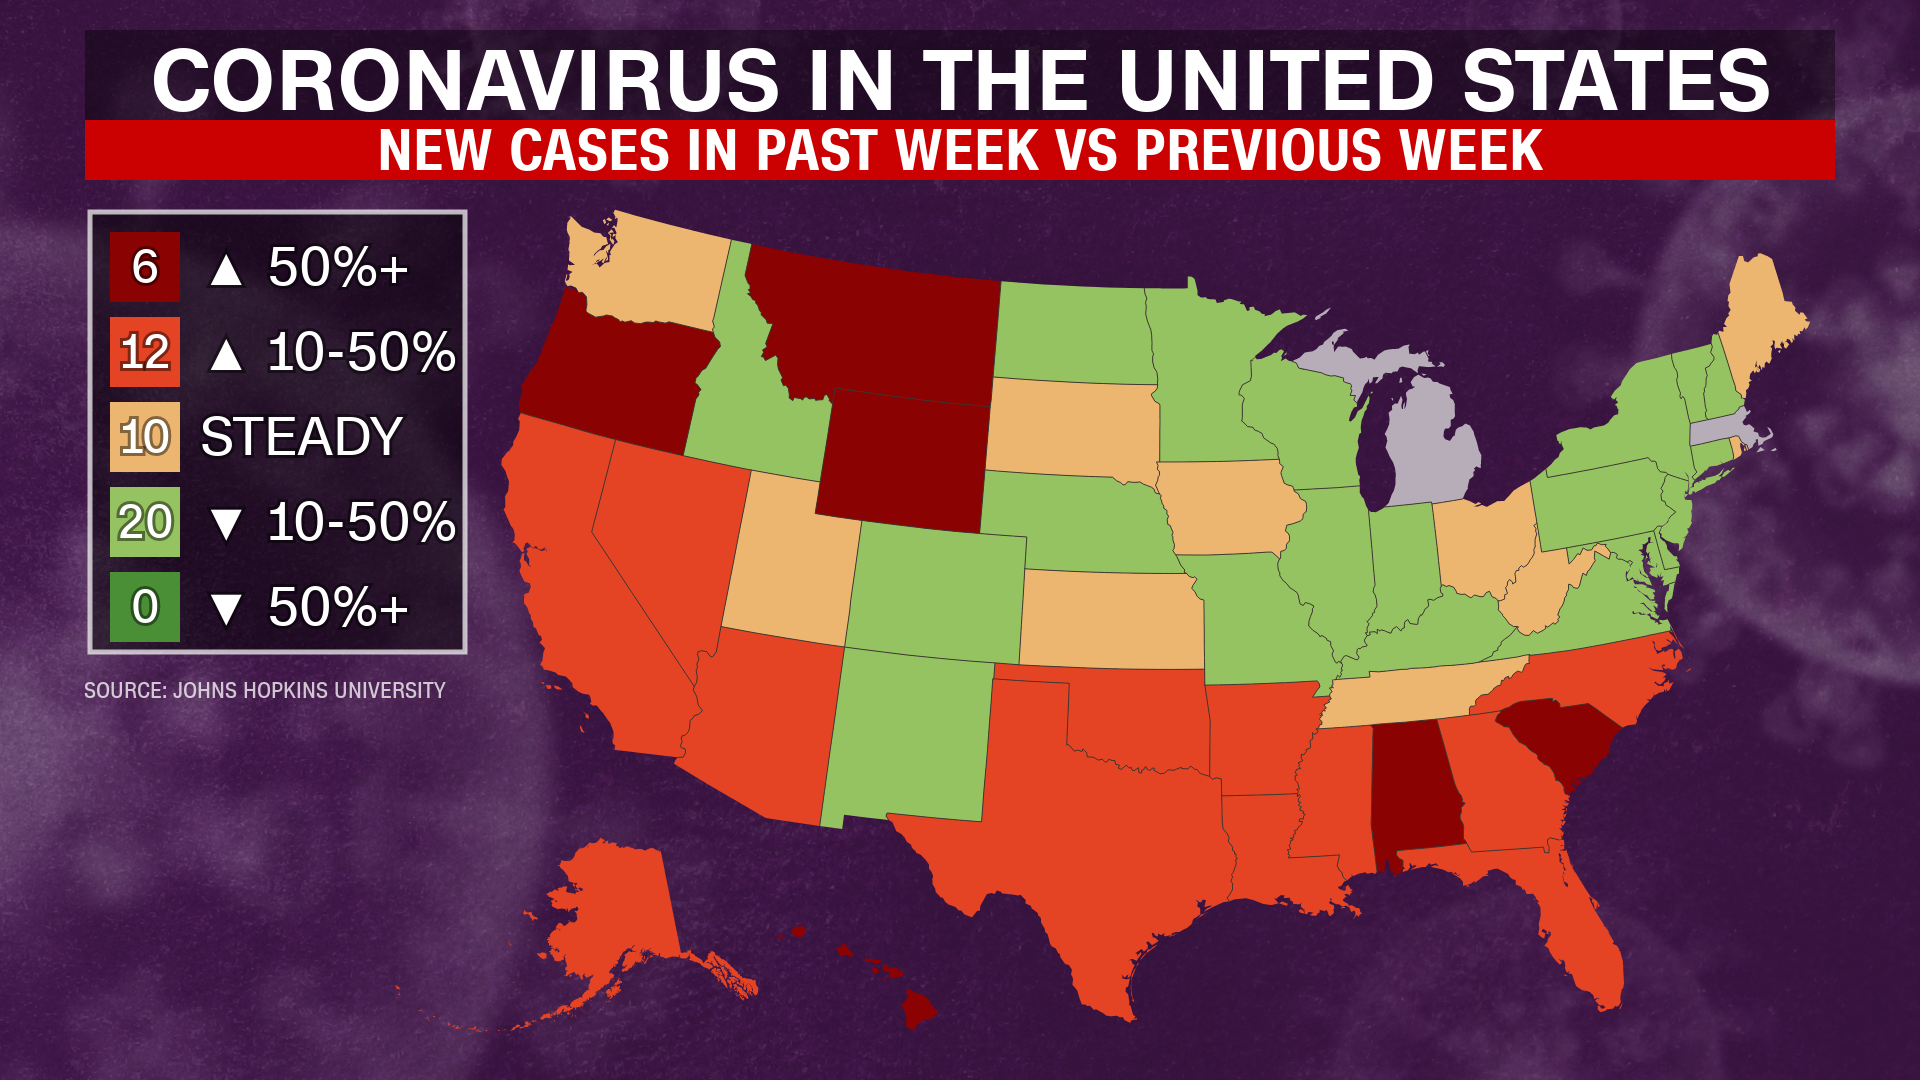 The number of coronavirus cases, which is increasing in 18 US states, predicts more deaths as a model